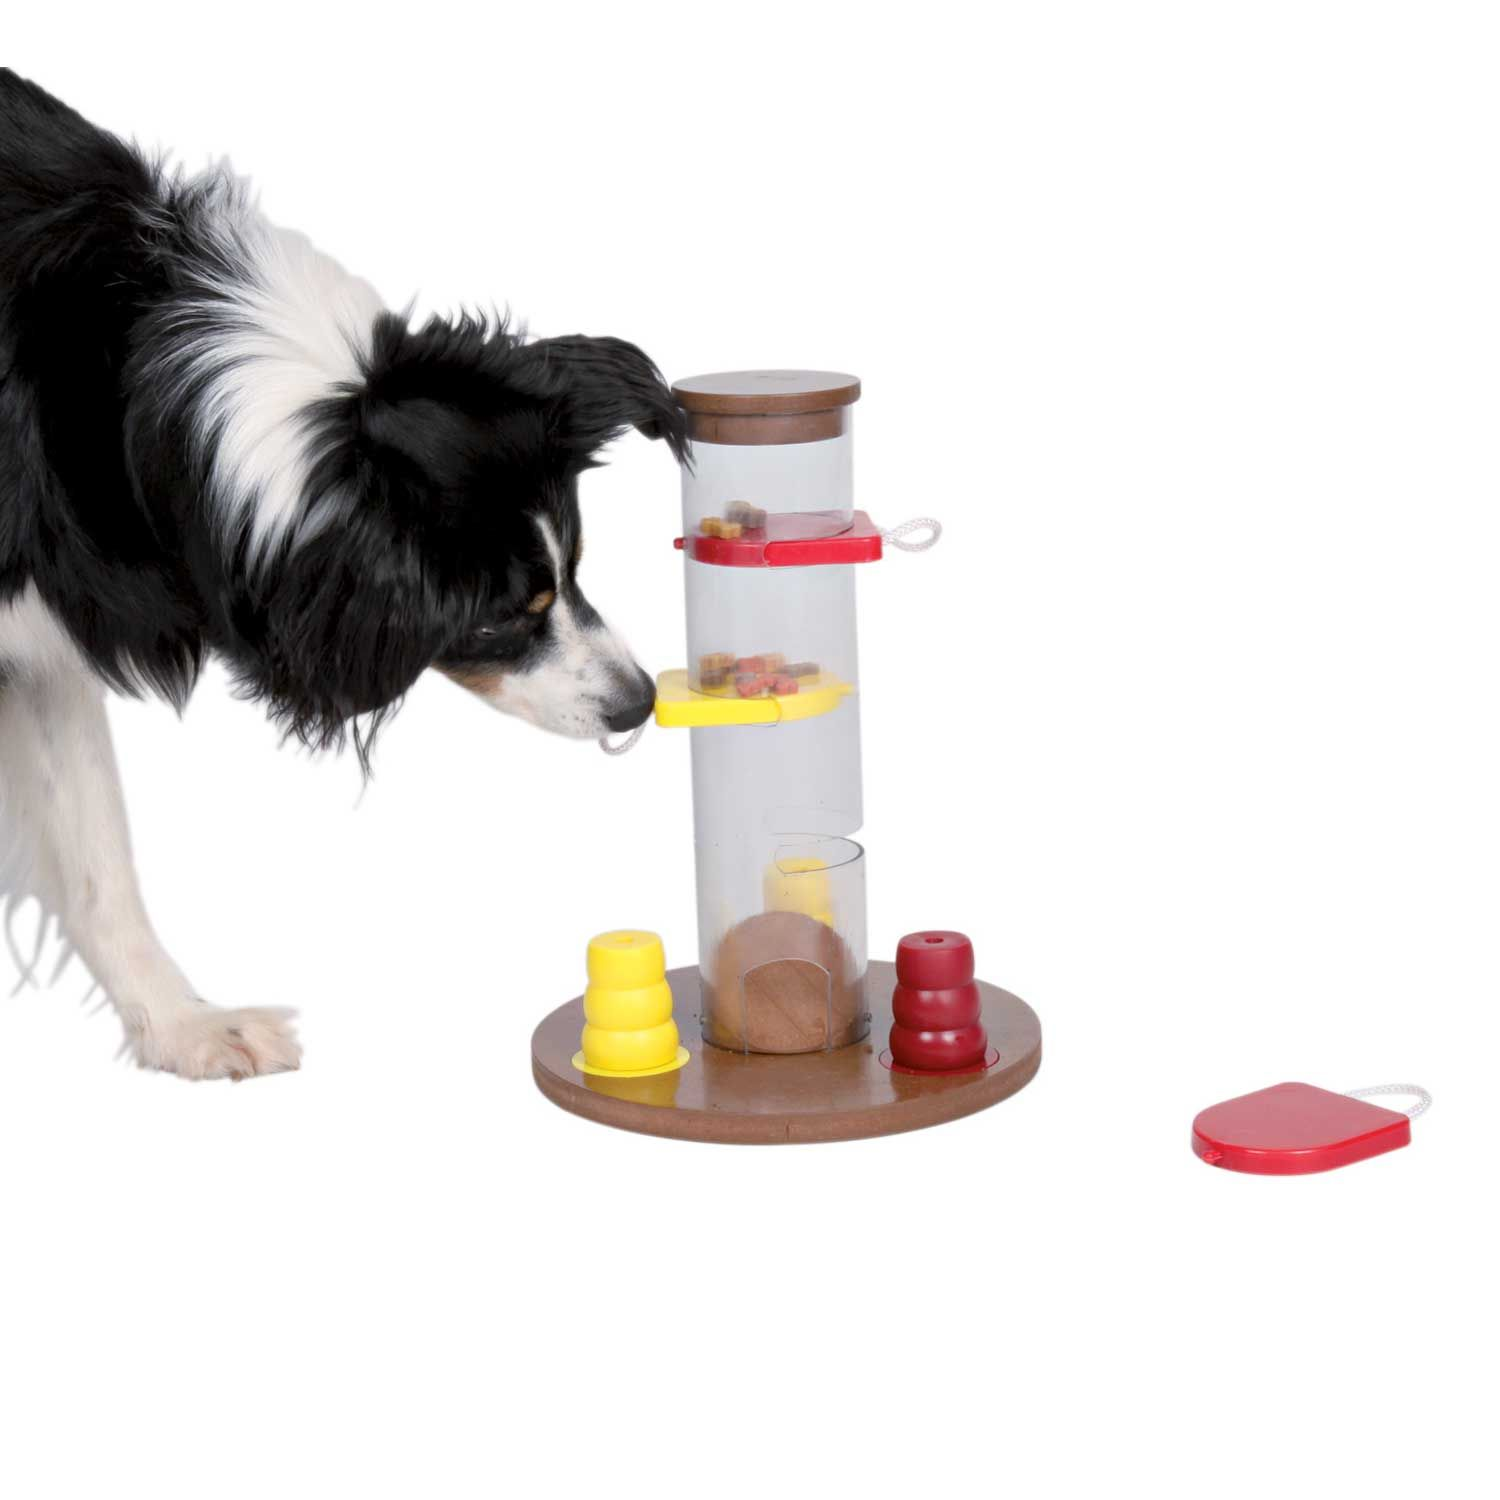 Dog gambling tower toy online gambling in south america